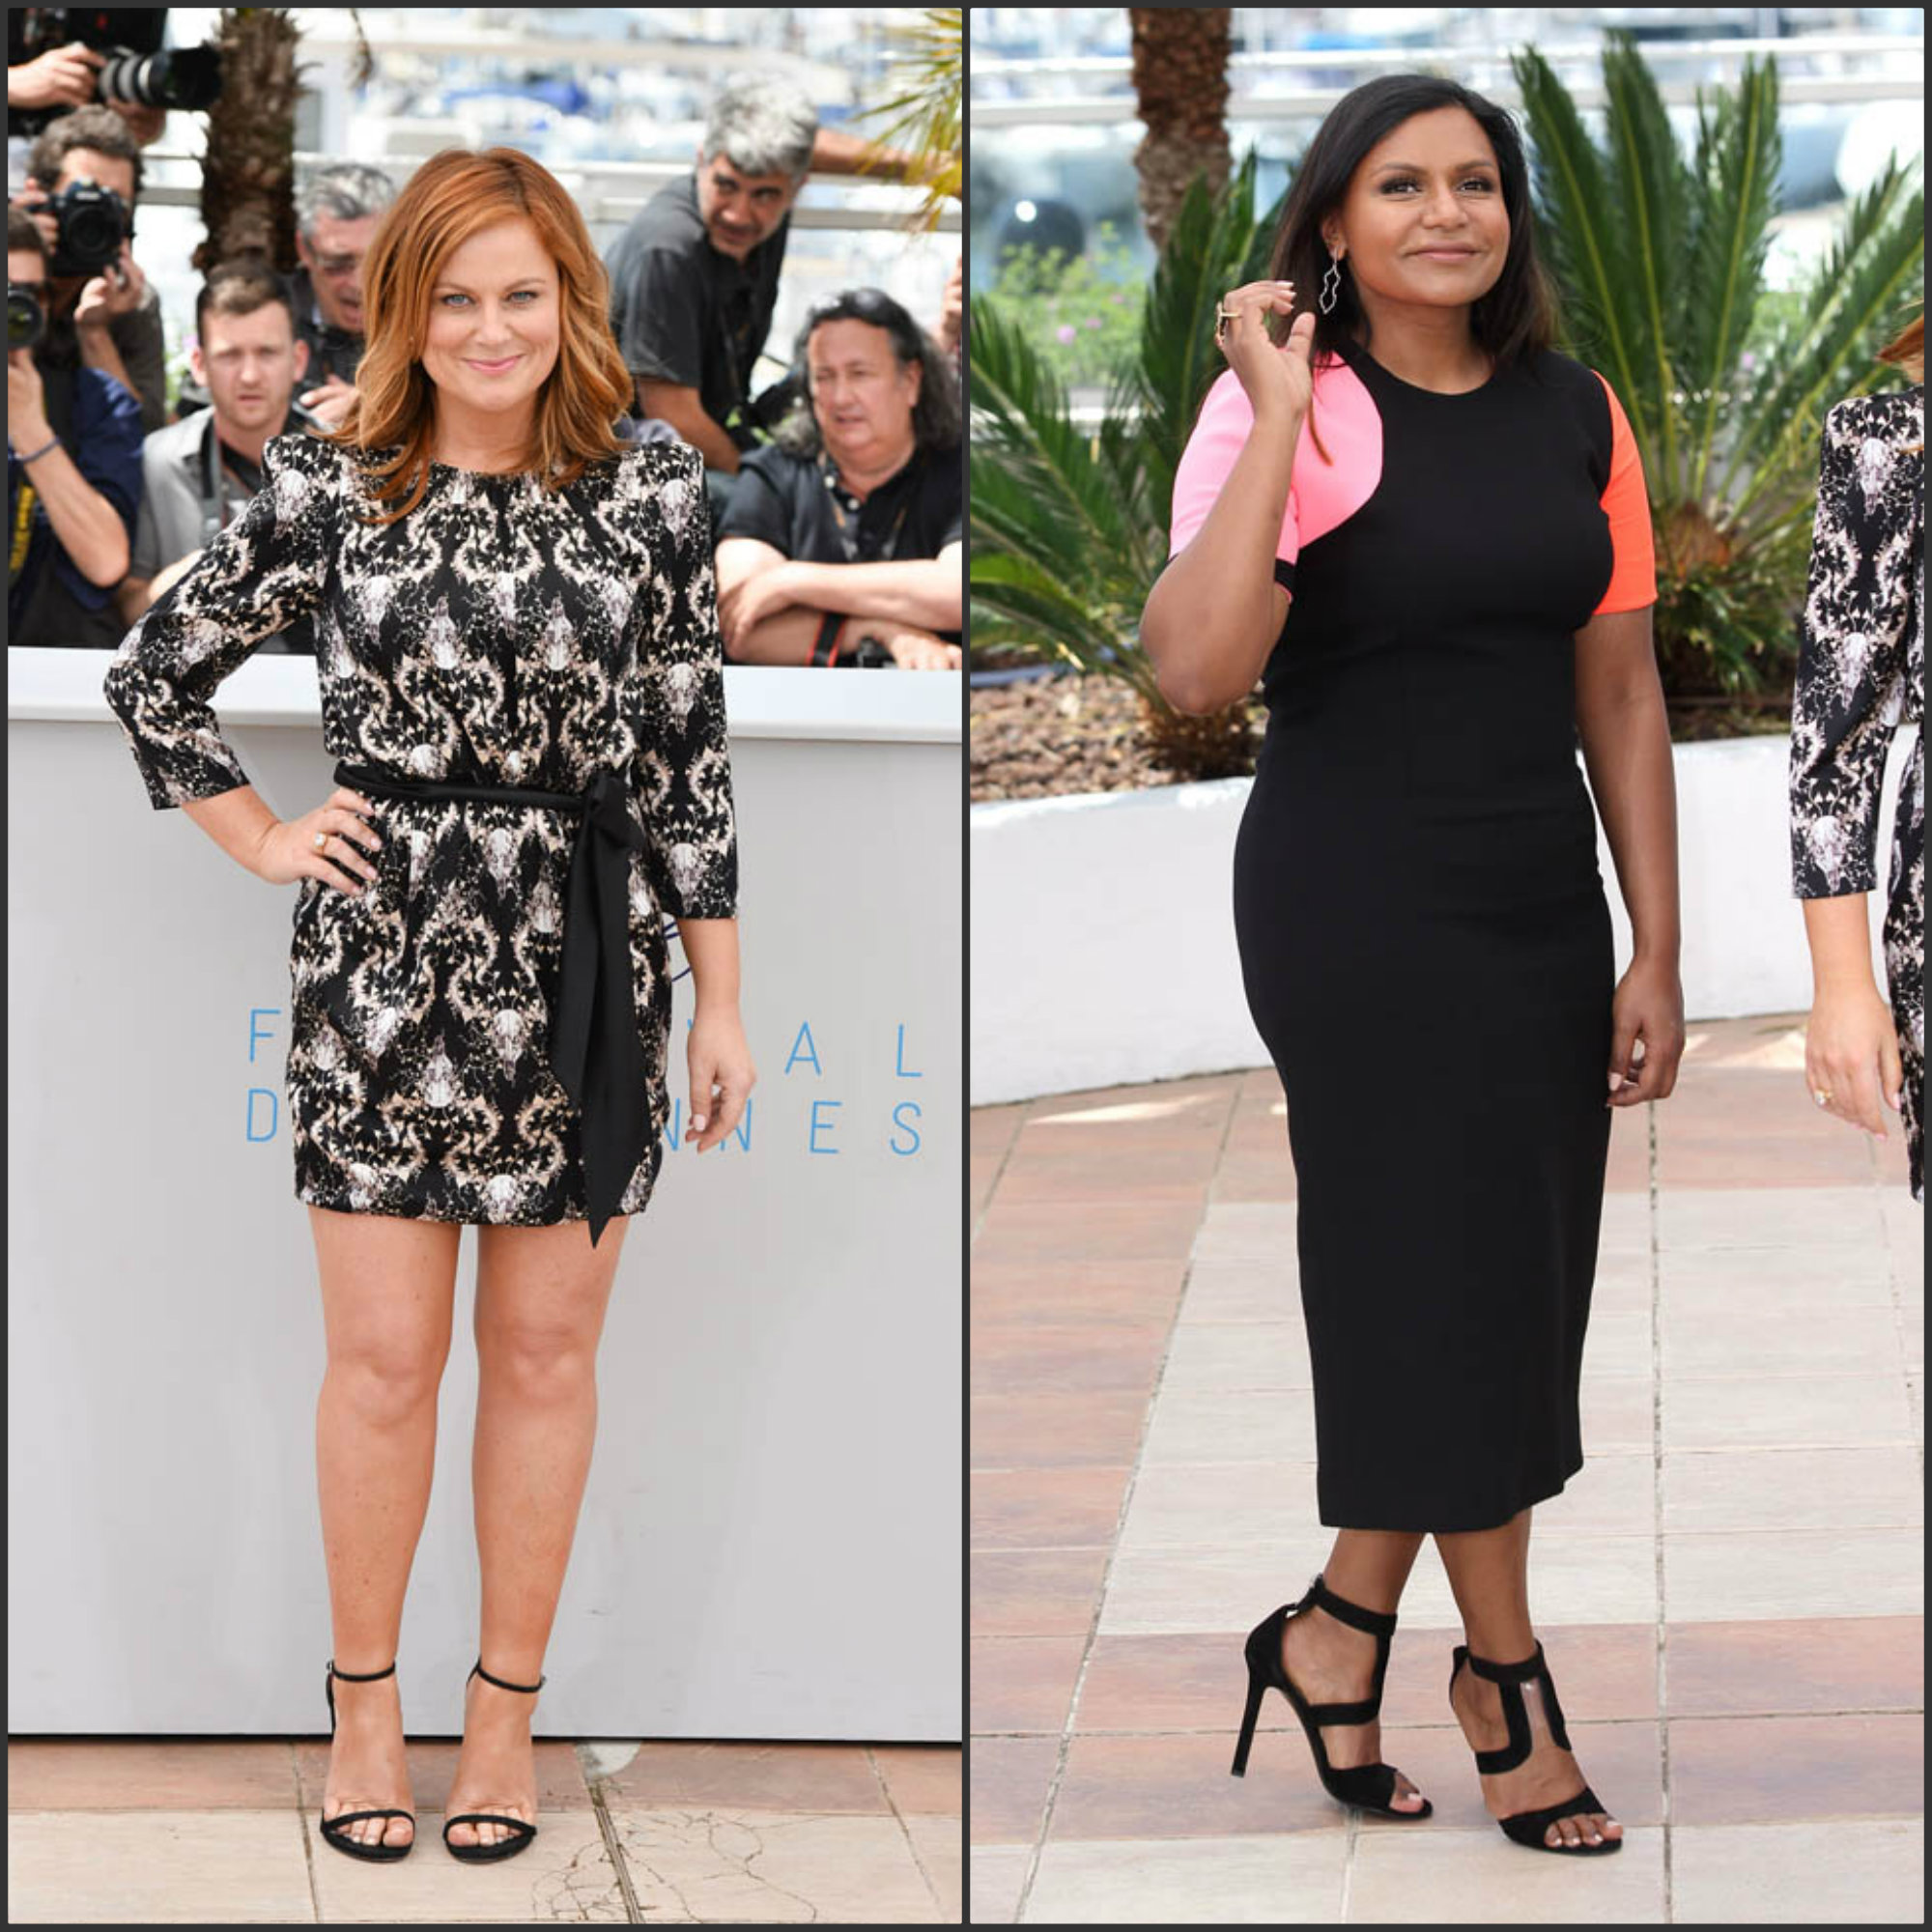 mindy-kaling-amy-poehler-inside-out-cannes-film-festival-photocalls (1)